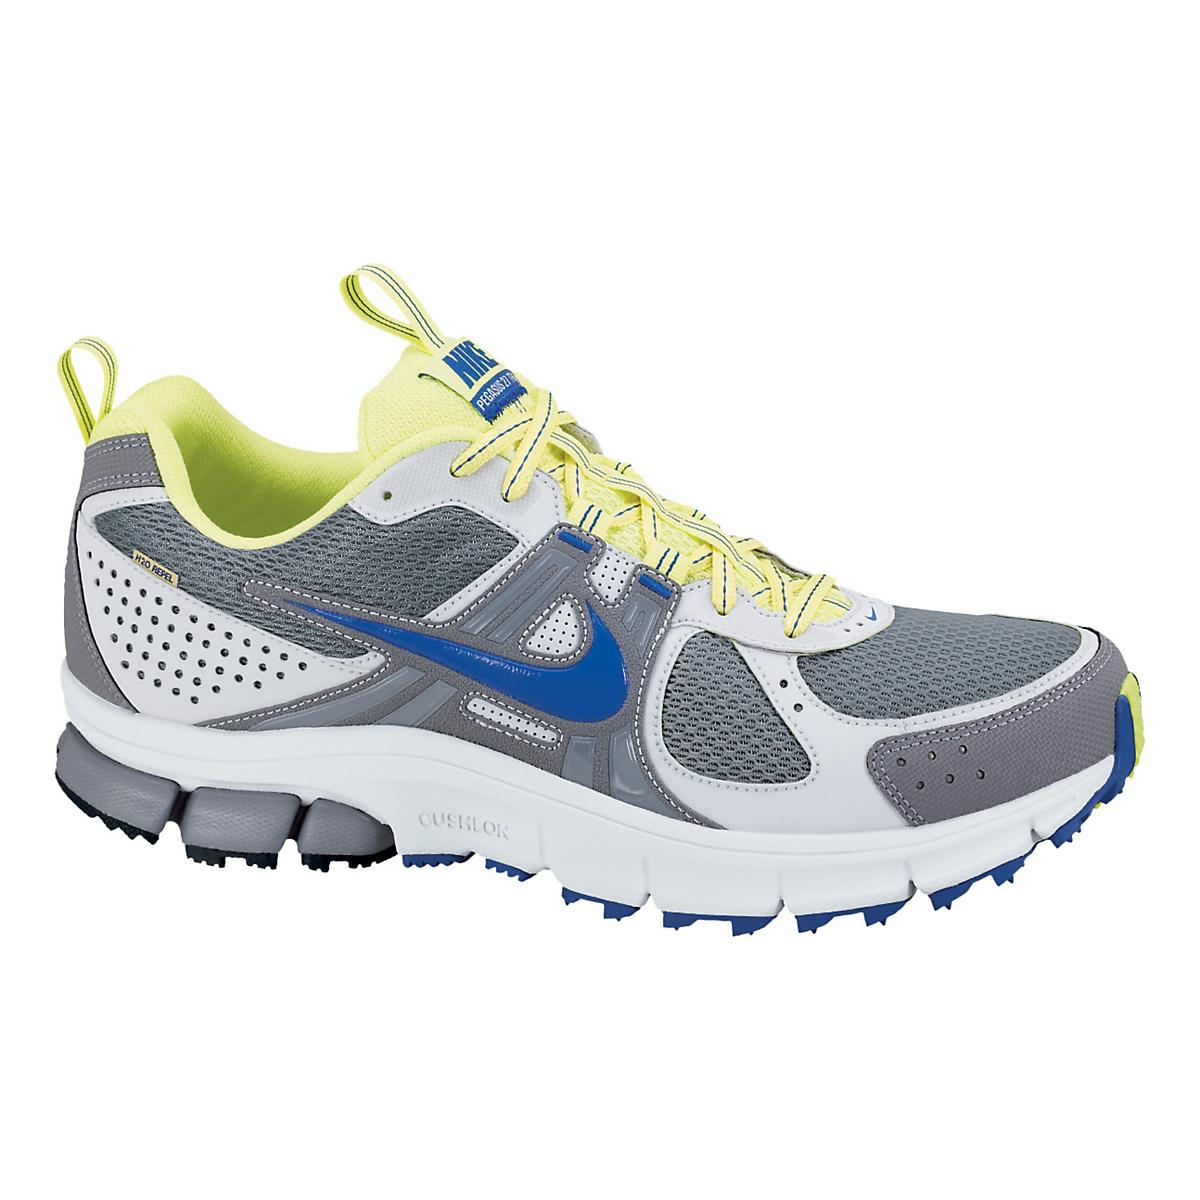 Oso Hacer un nombre Hazlo pesado  Mens Nike Air Pegasus+ 27 Trail WR Trail Running Shoe at Road Runner Sports